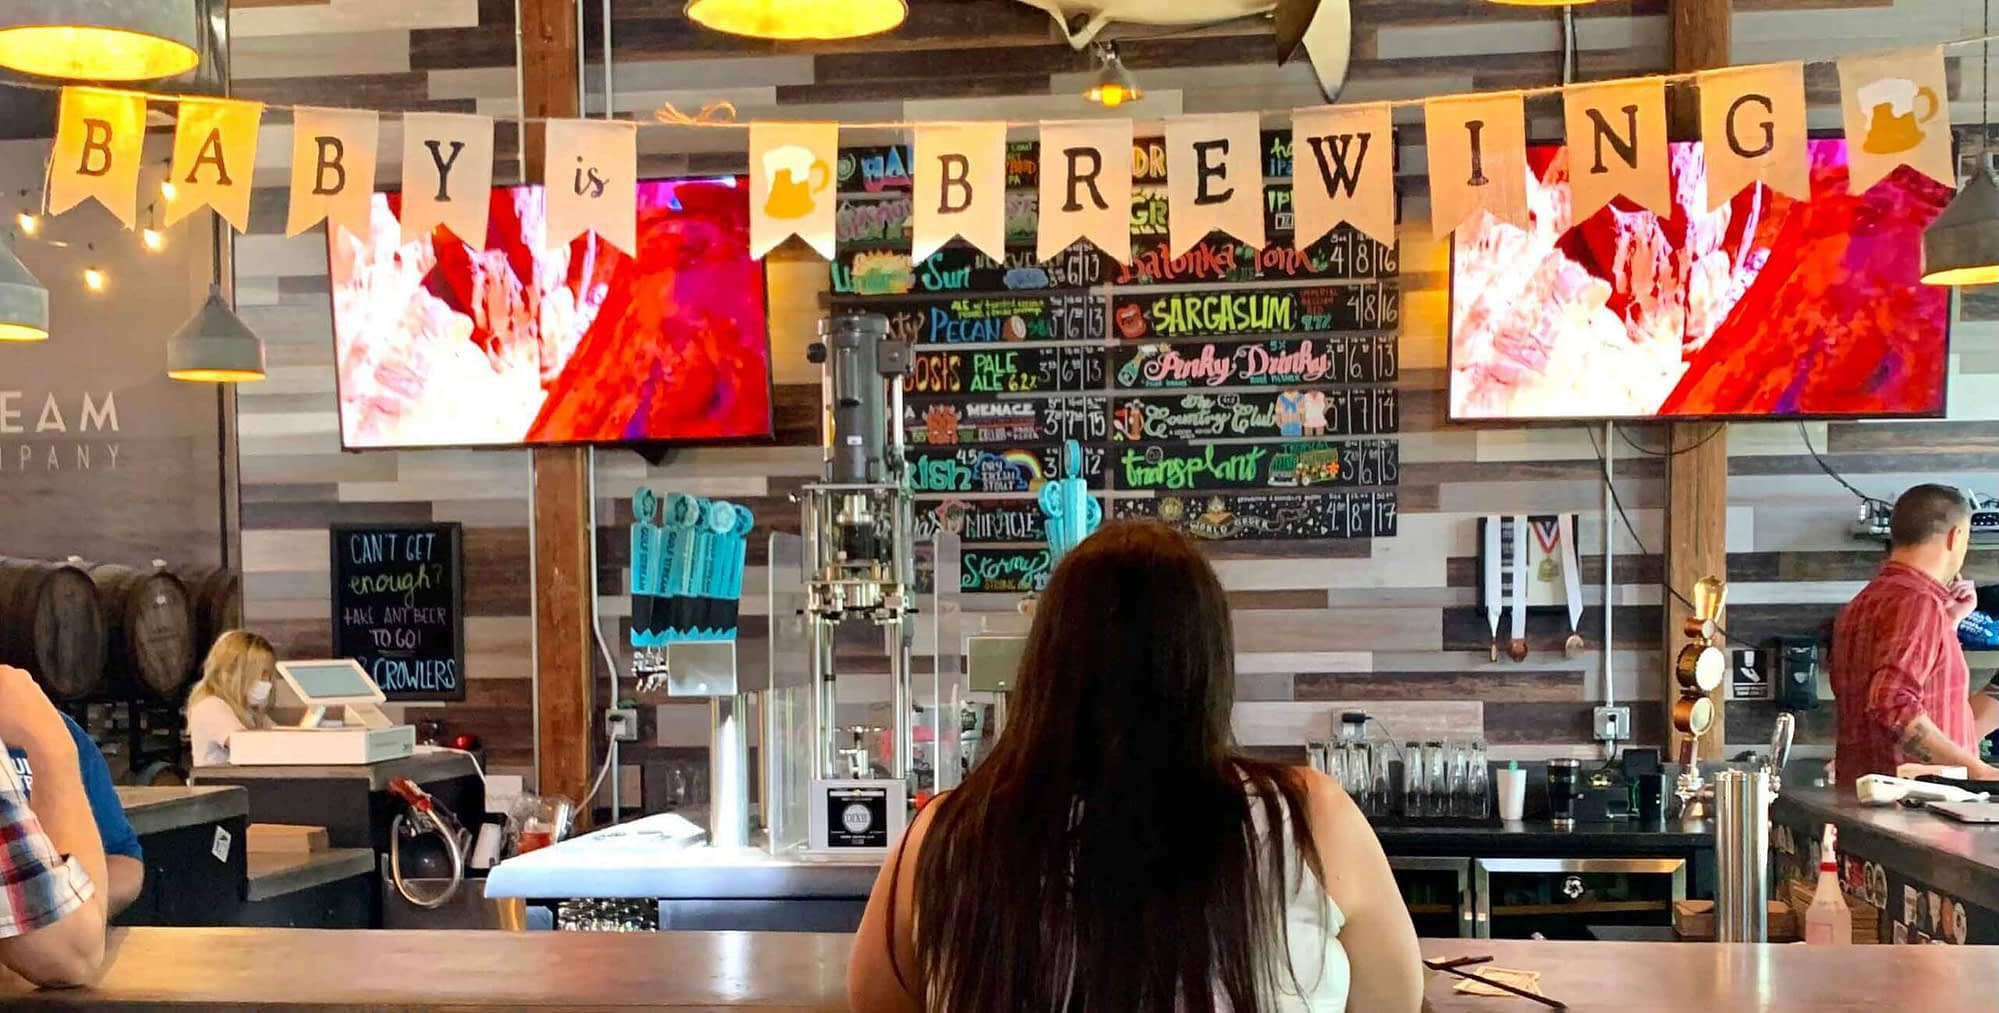 Book your next event at Gulf stream Brewing Company